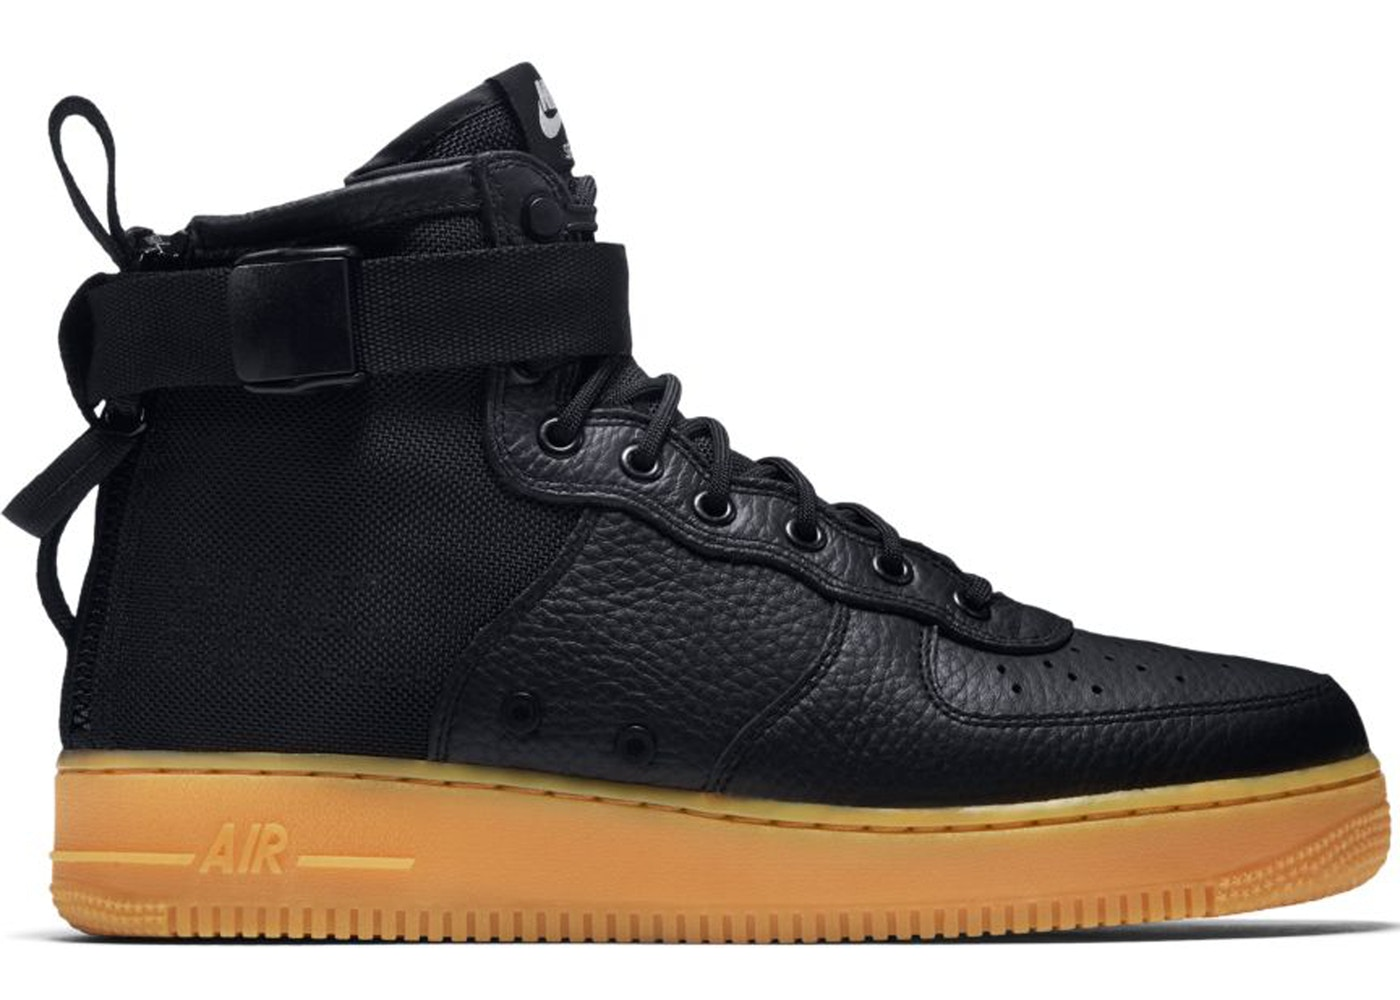 Nike SF Air Force 1 Mid Black Gum - 917753-003 013135695